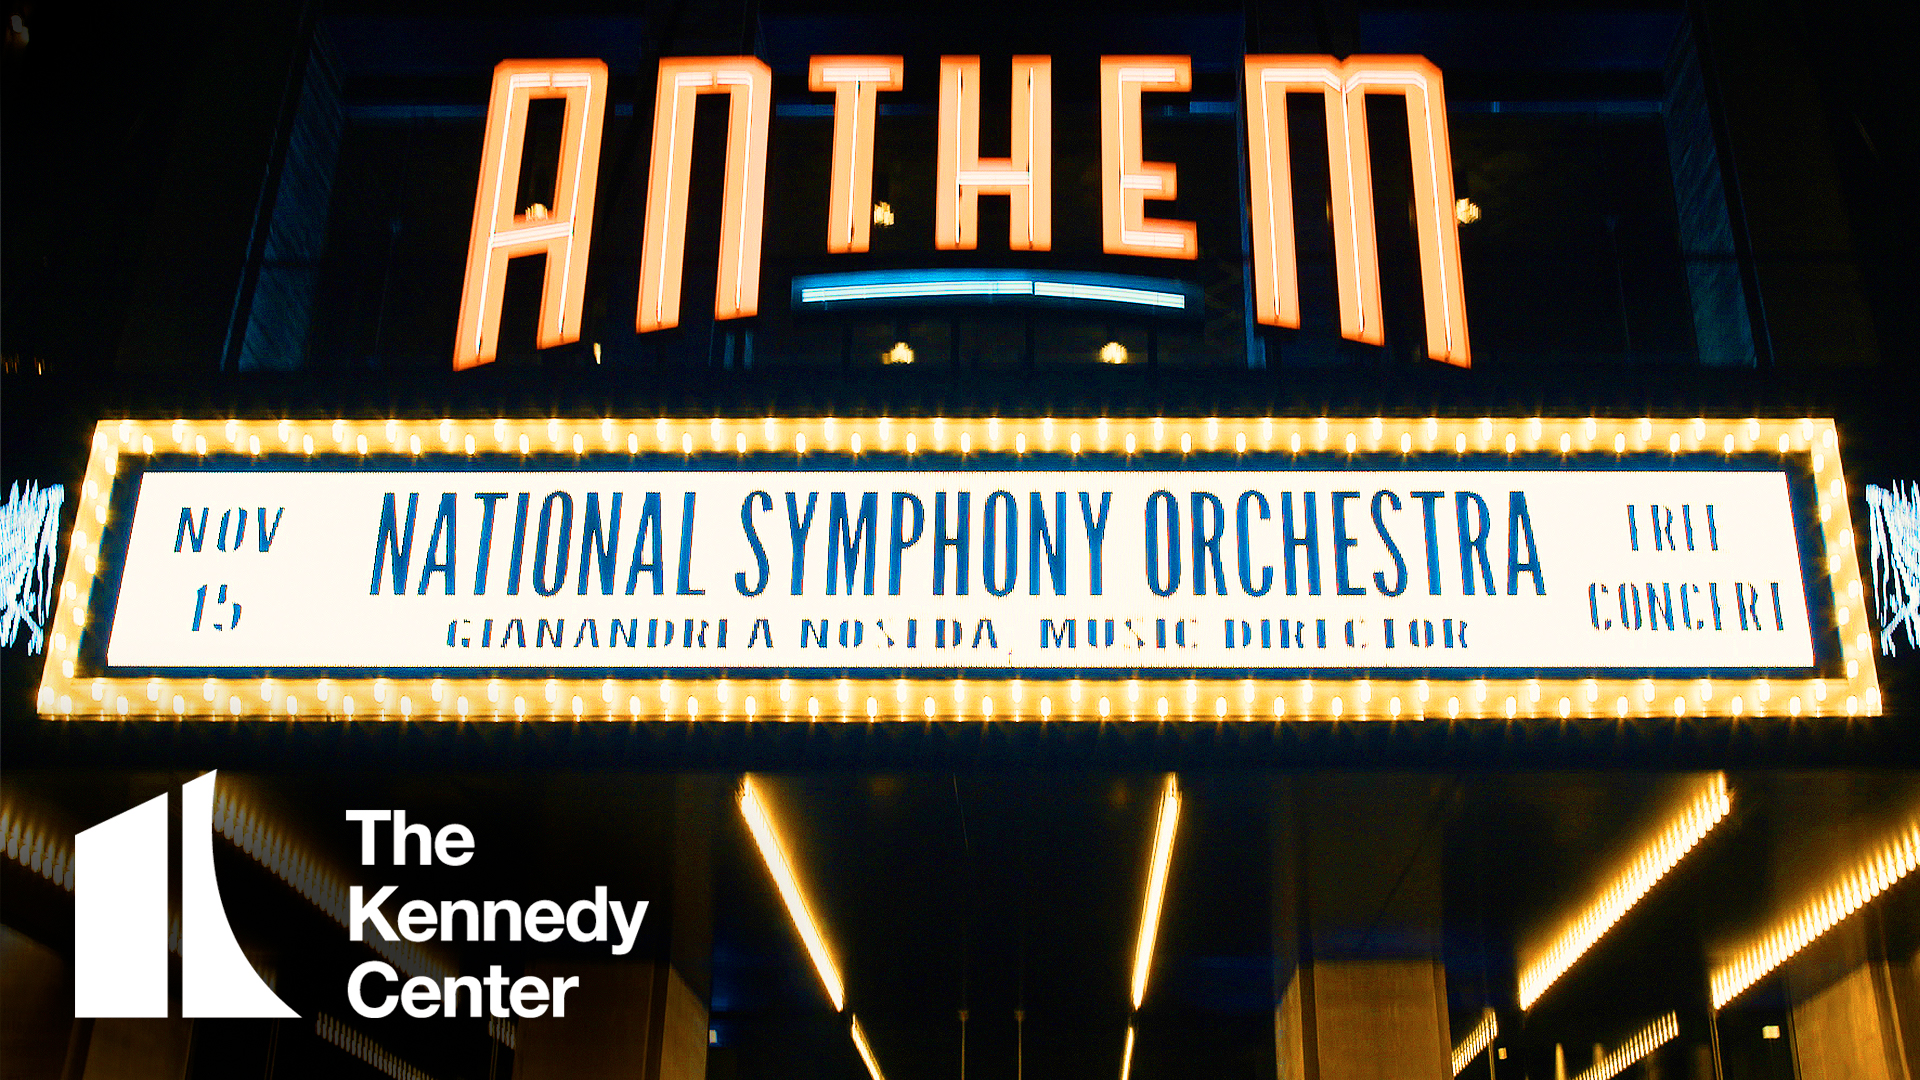 See the National Symphony Orchestra at The Anthem in DC!